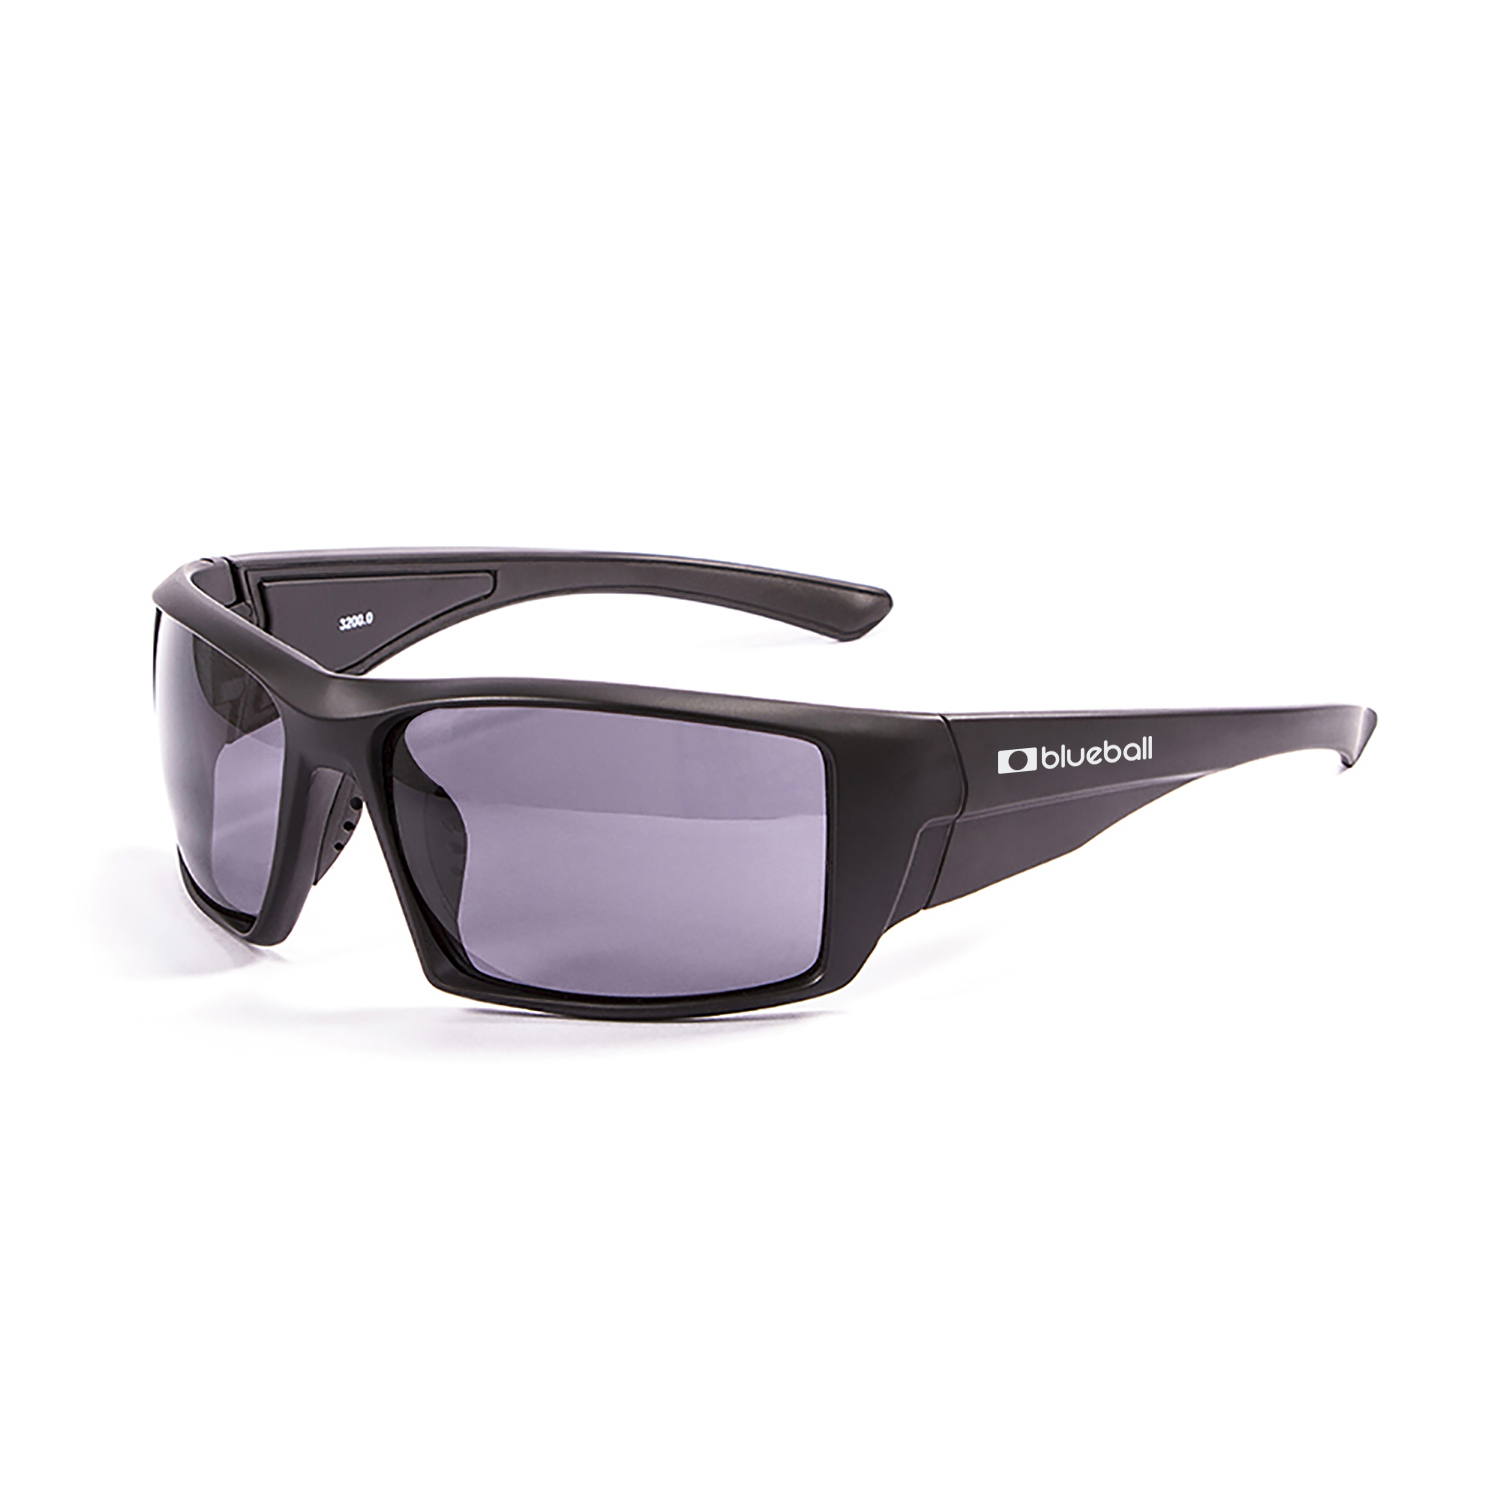 bb3200 sport sunglasses